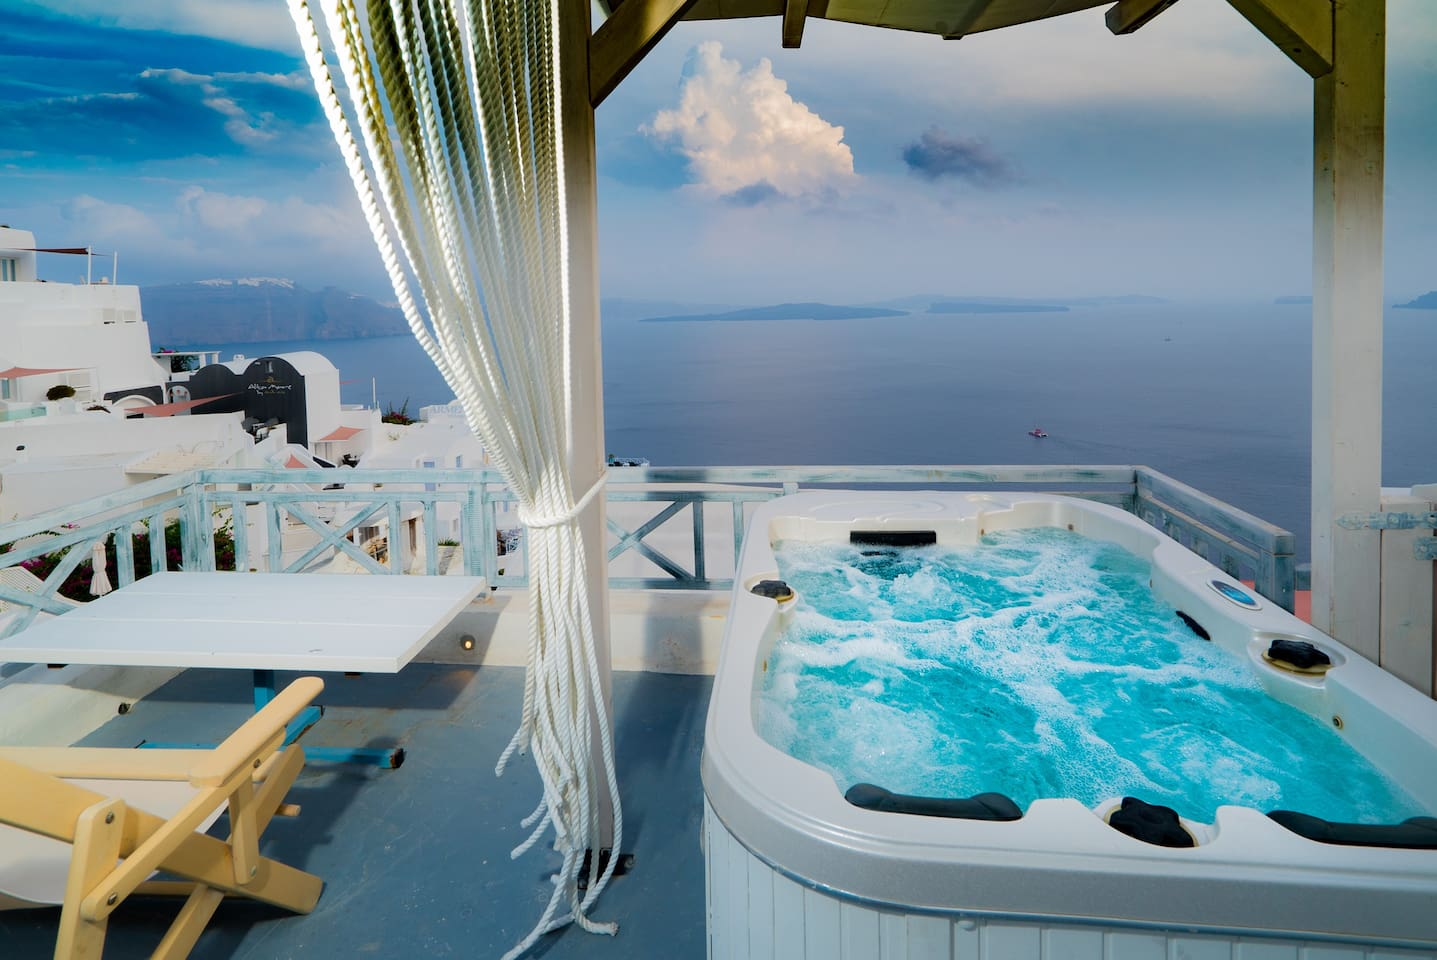 Outdoor hot tub for two